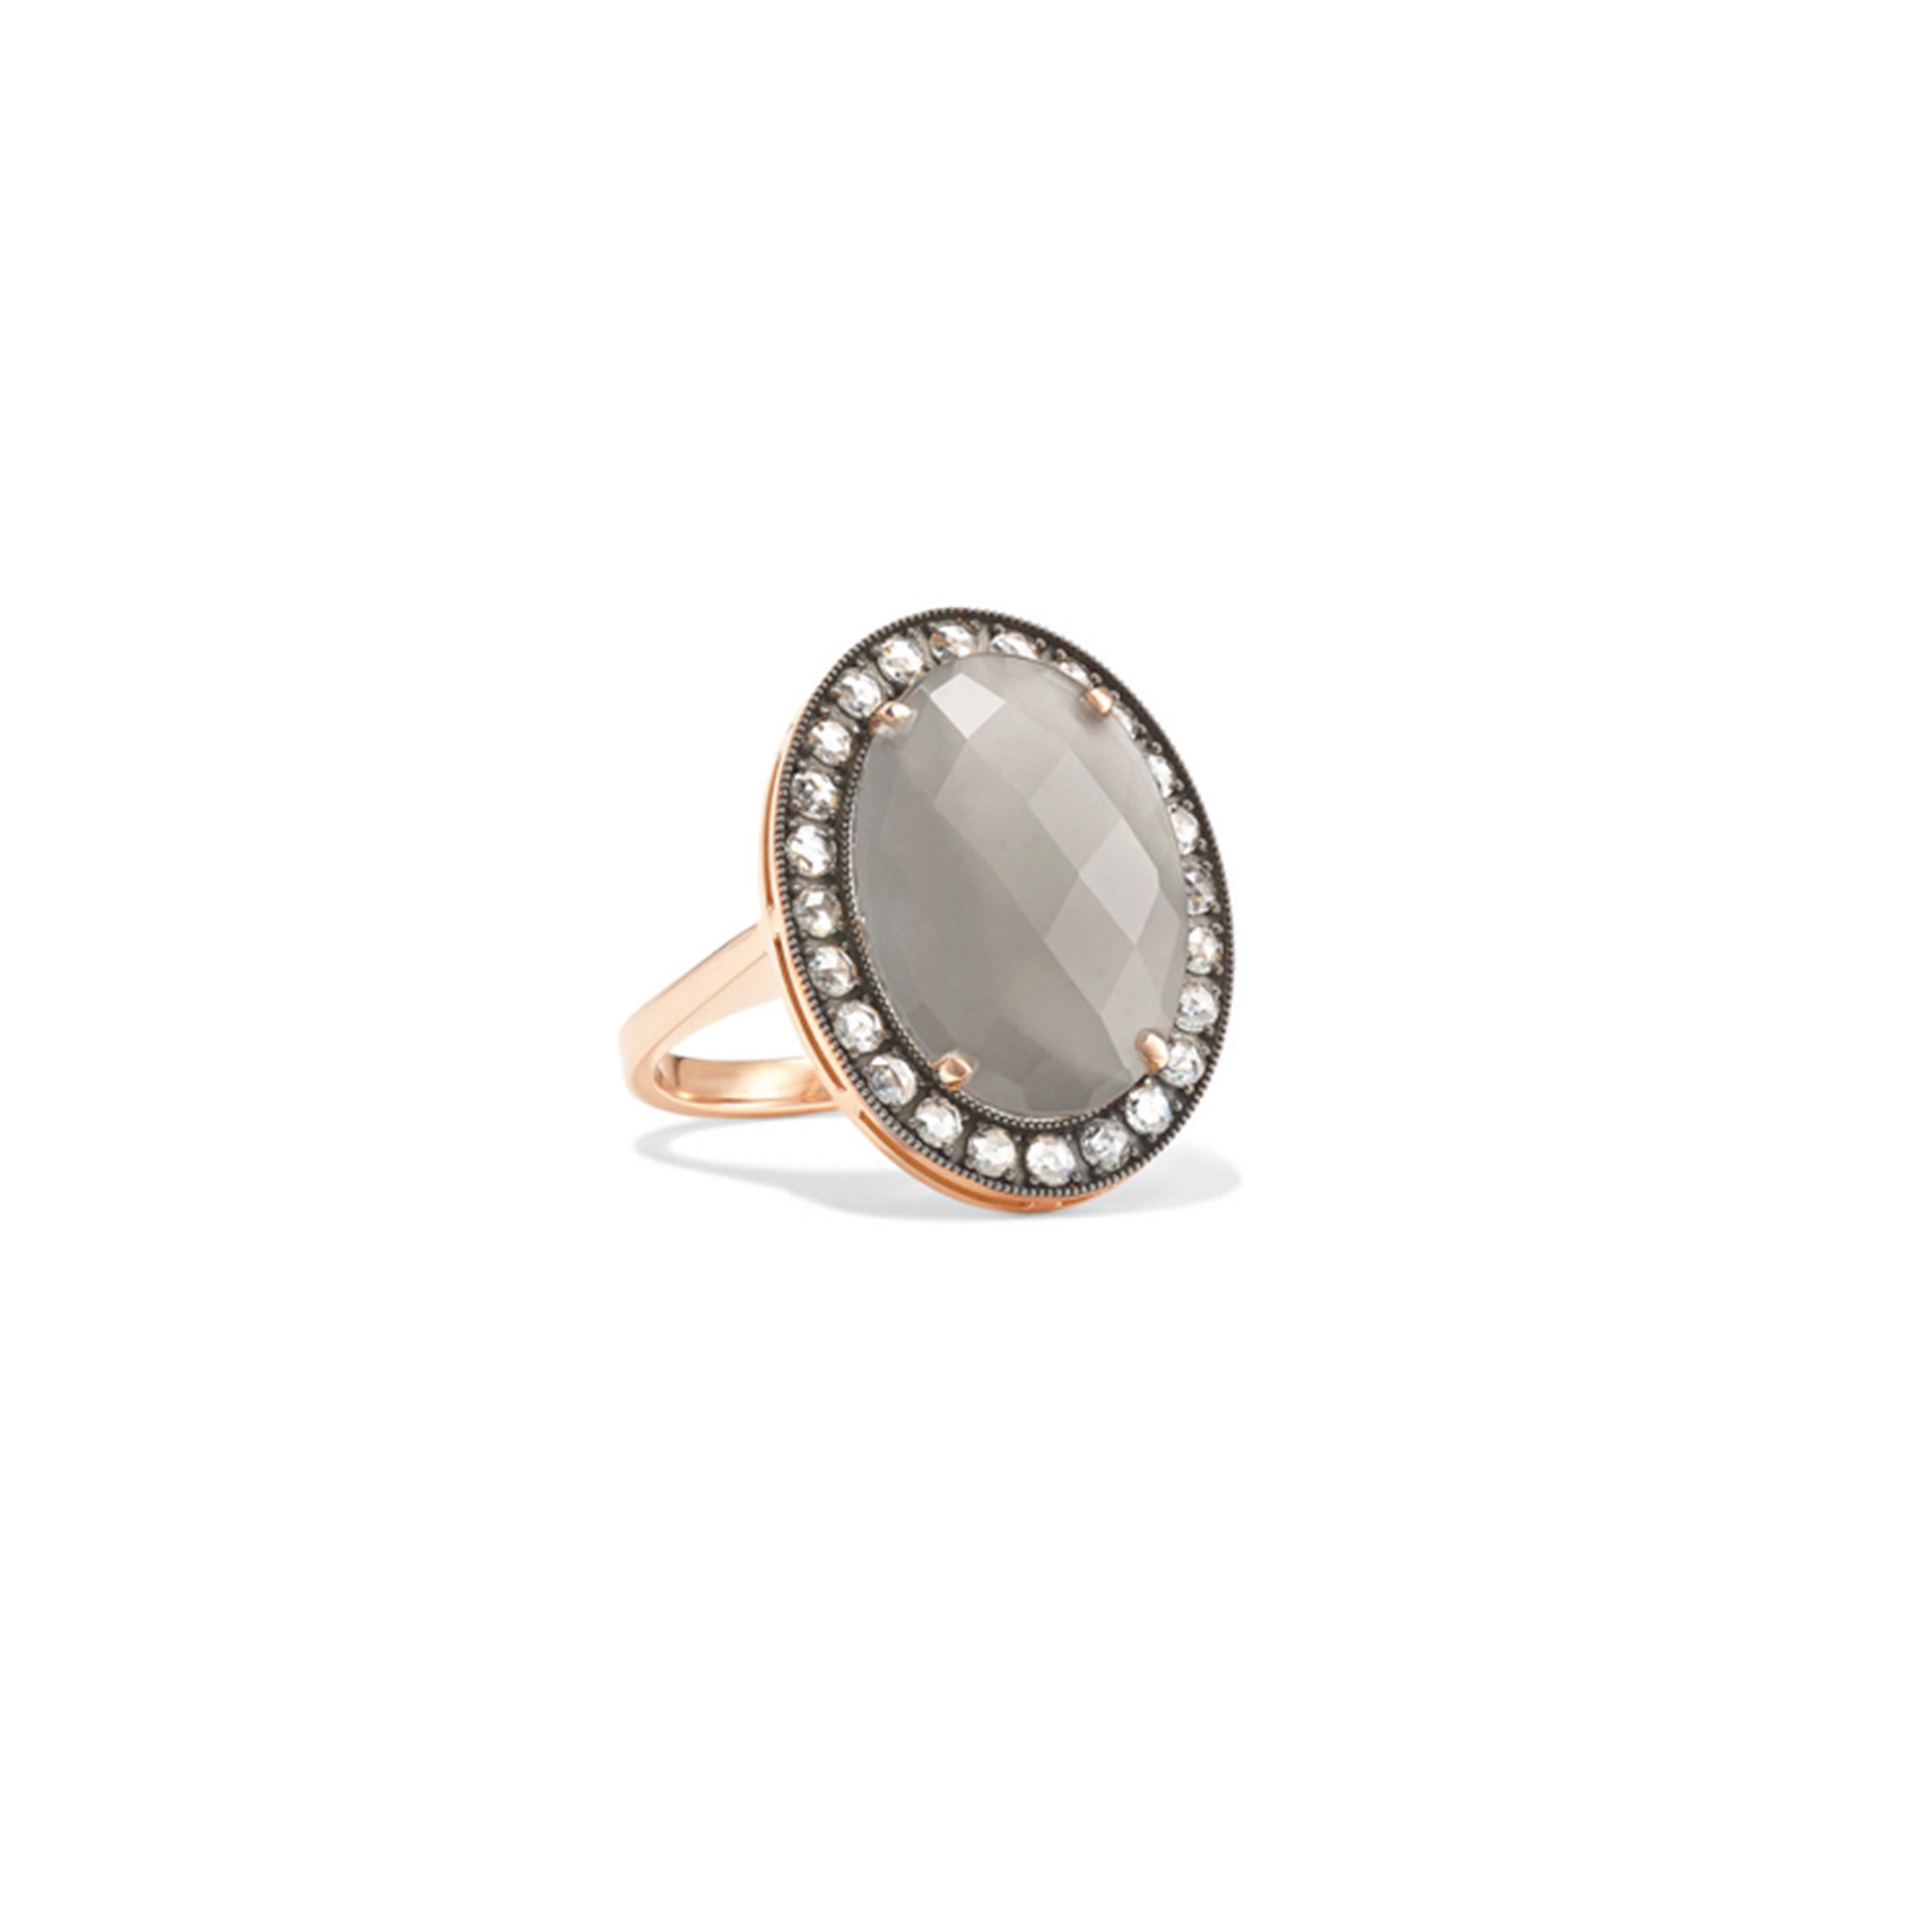 Oval Grey Moonstone Diamond Ring